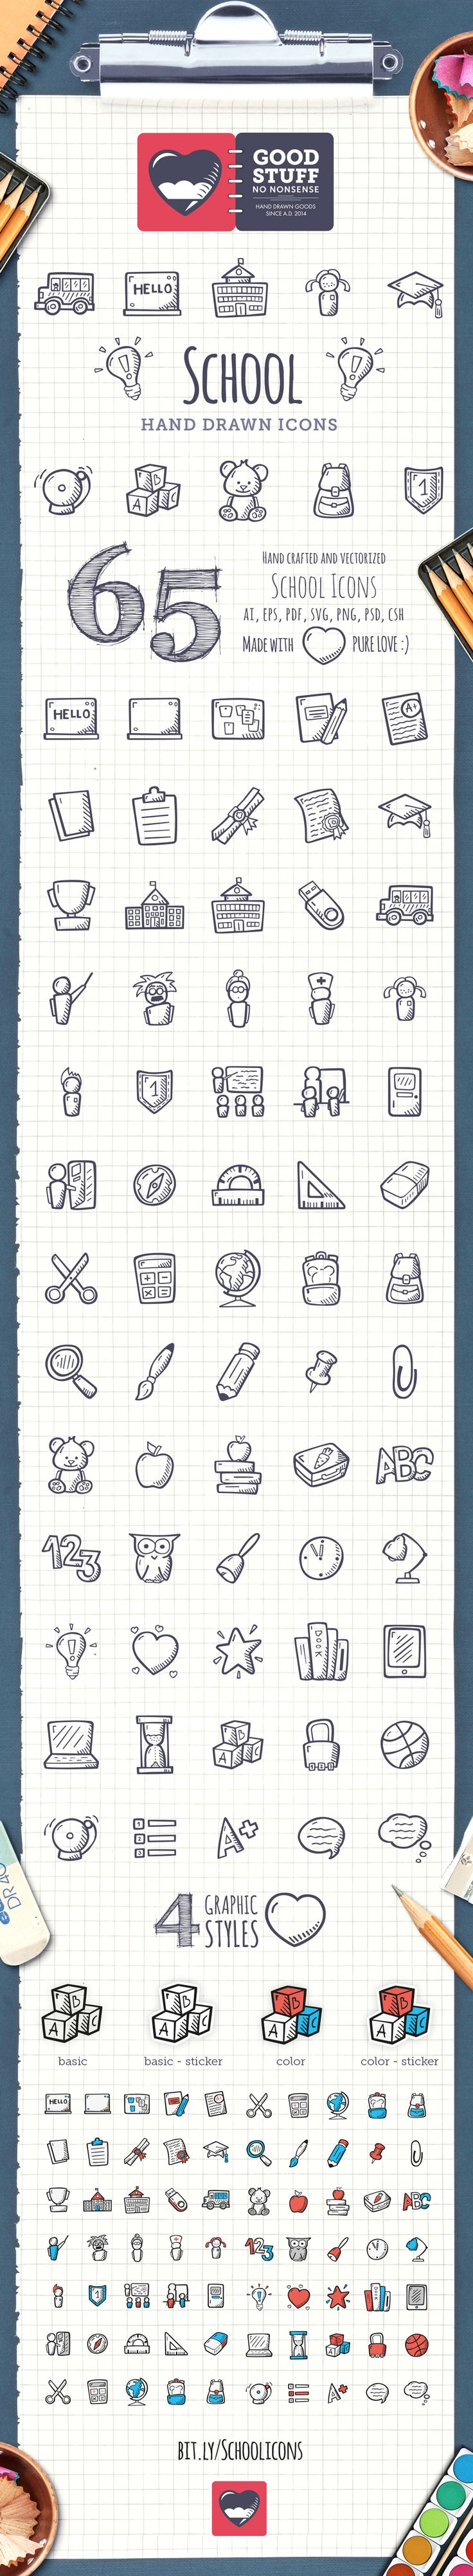 School Icons made by @weboutloud #icons #HandDrawnIcons #doodle #tinyart #etsy #scrapbooking #school #education #schoolIcons #EducationIcons